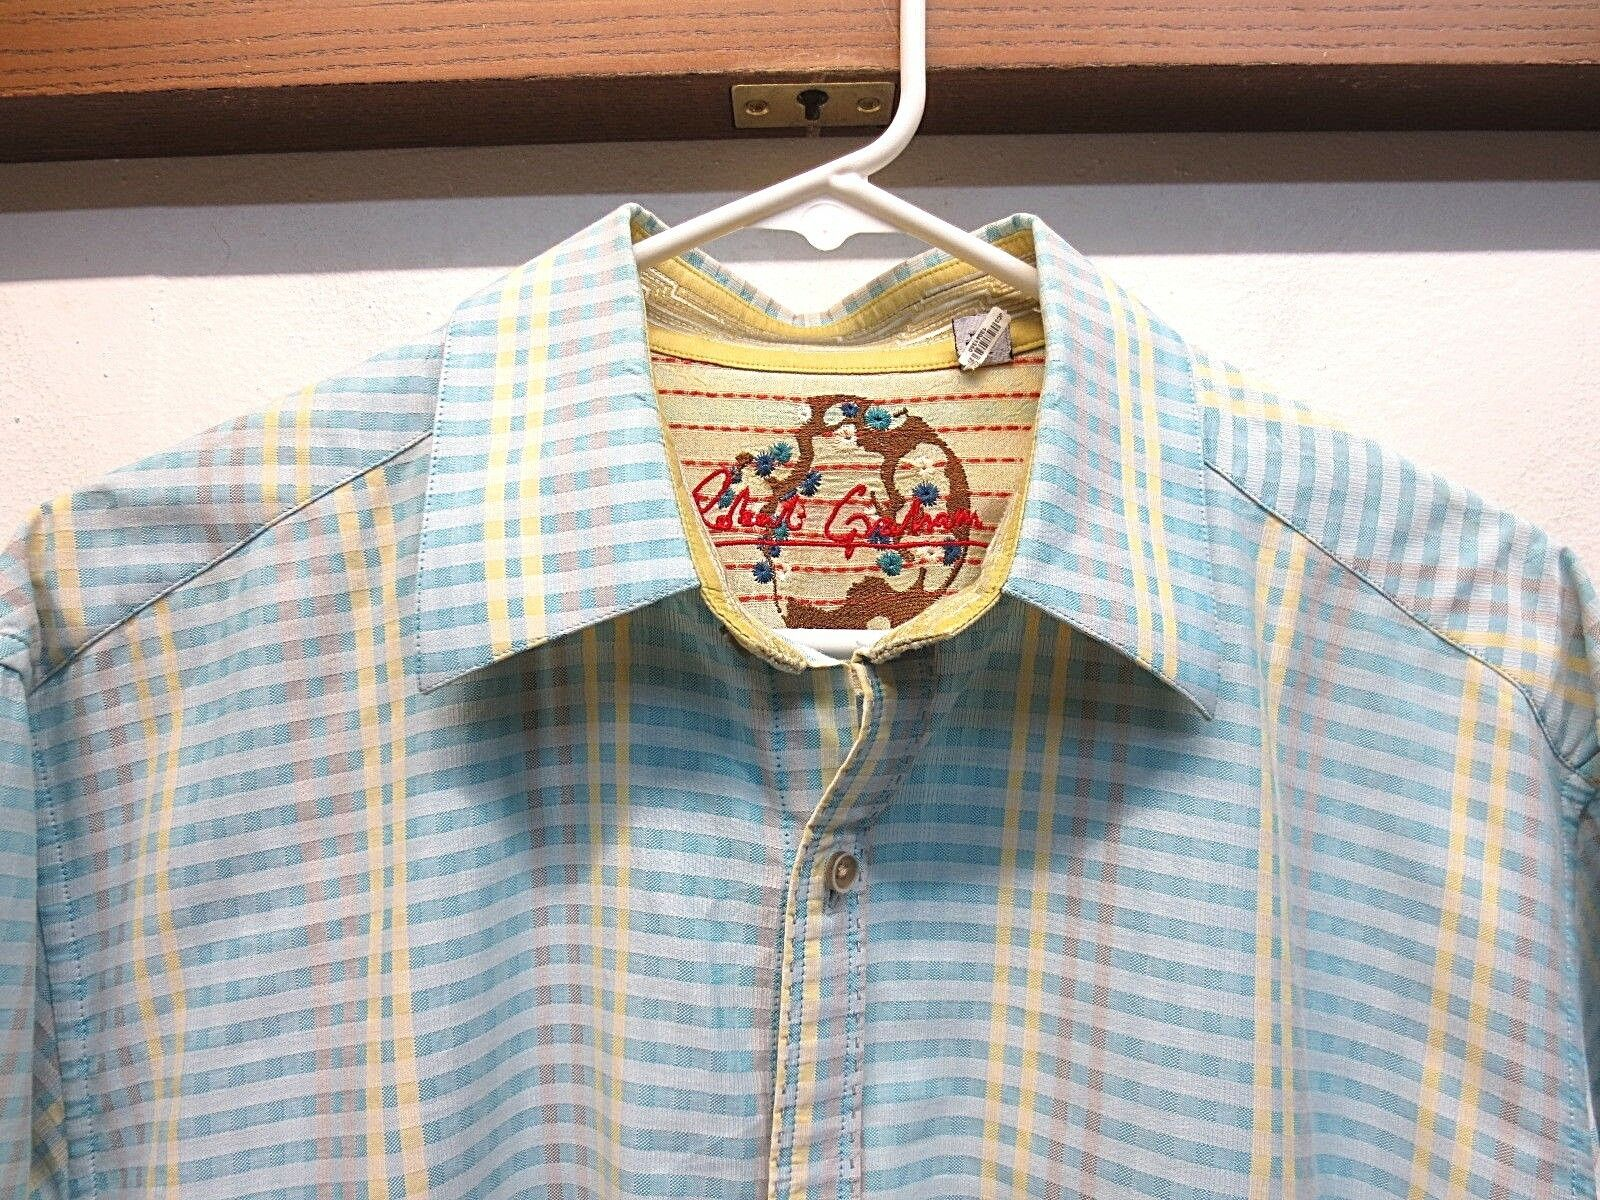 EUC Mens Robert Graham Button Front Shirt bluee Yellow Plaid Textured Size Large